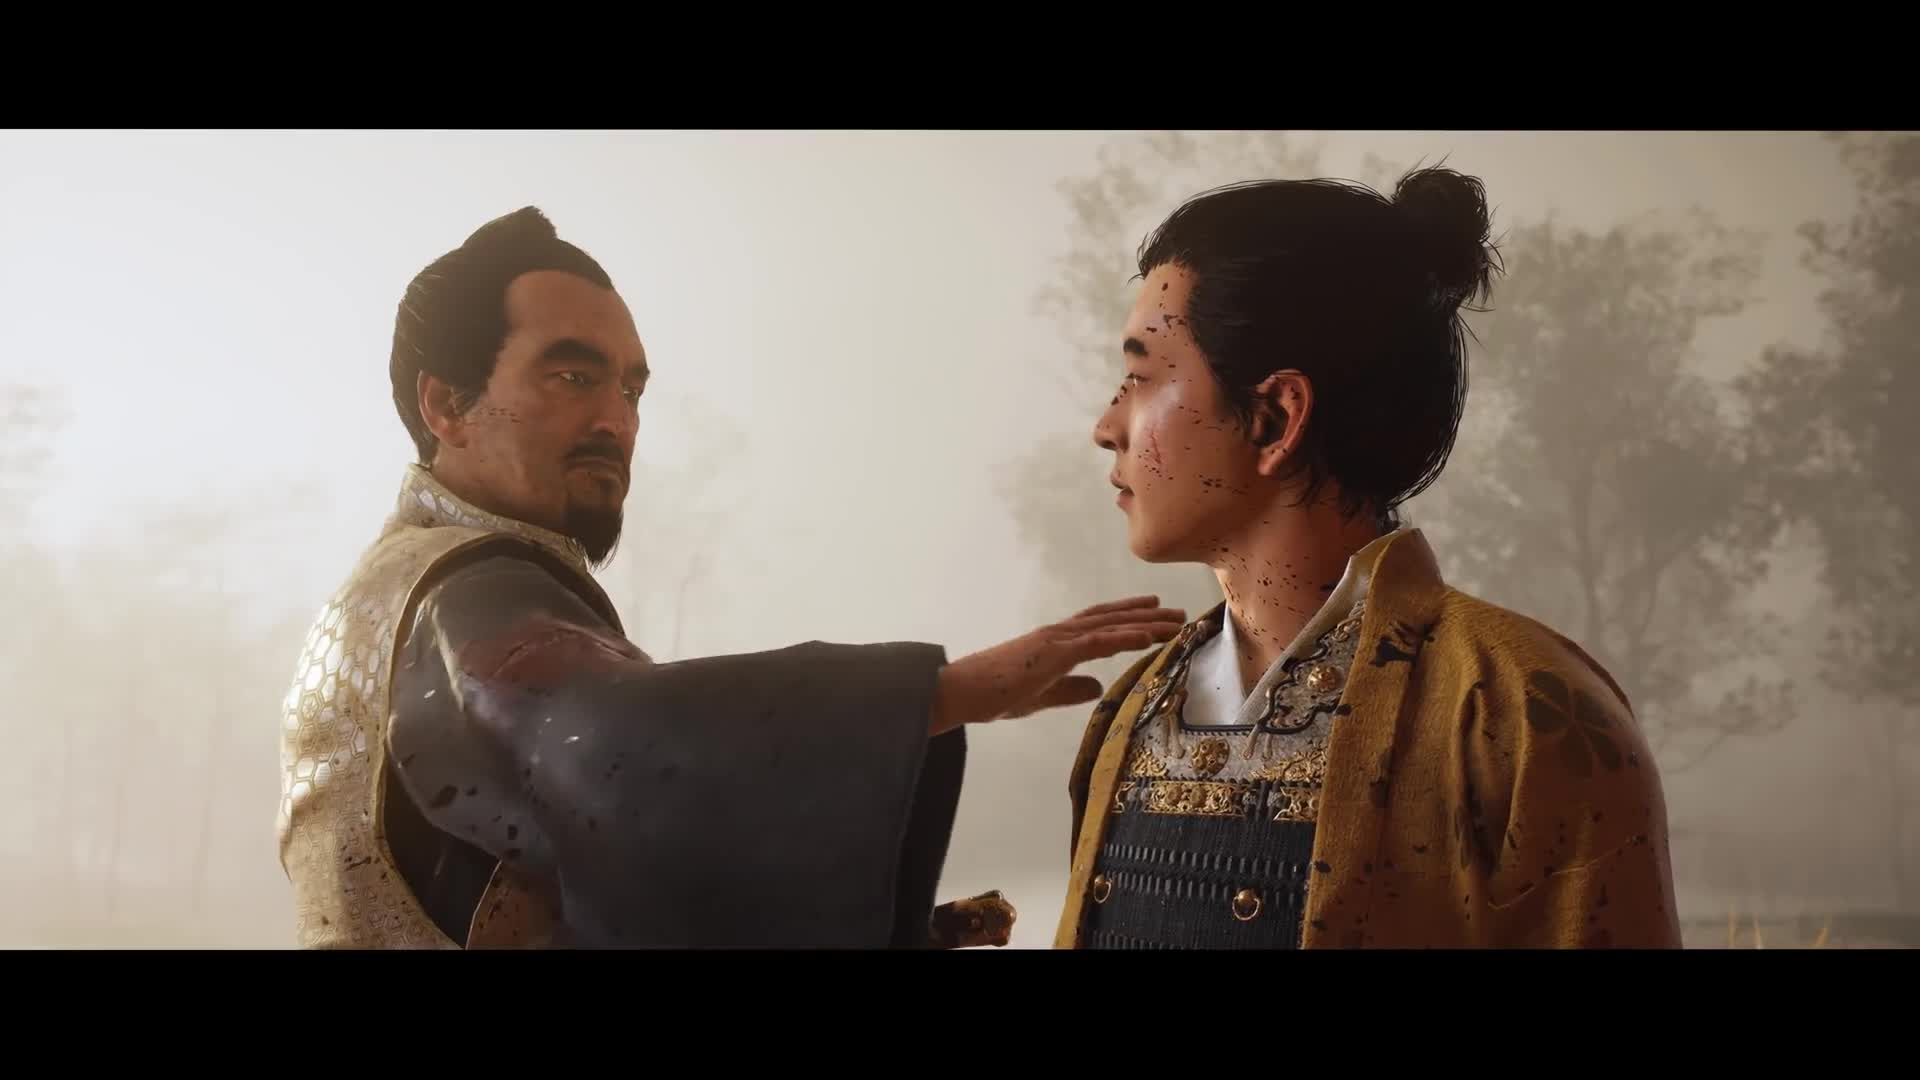 Trailer, Sony, PlayStation 4, Playstation, PS4, Sony PlayStation 4, actionspiel, Sony PS4, Ghost of Tsushima